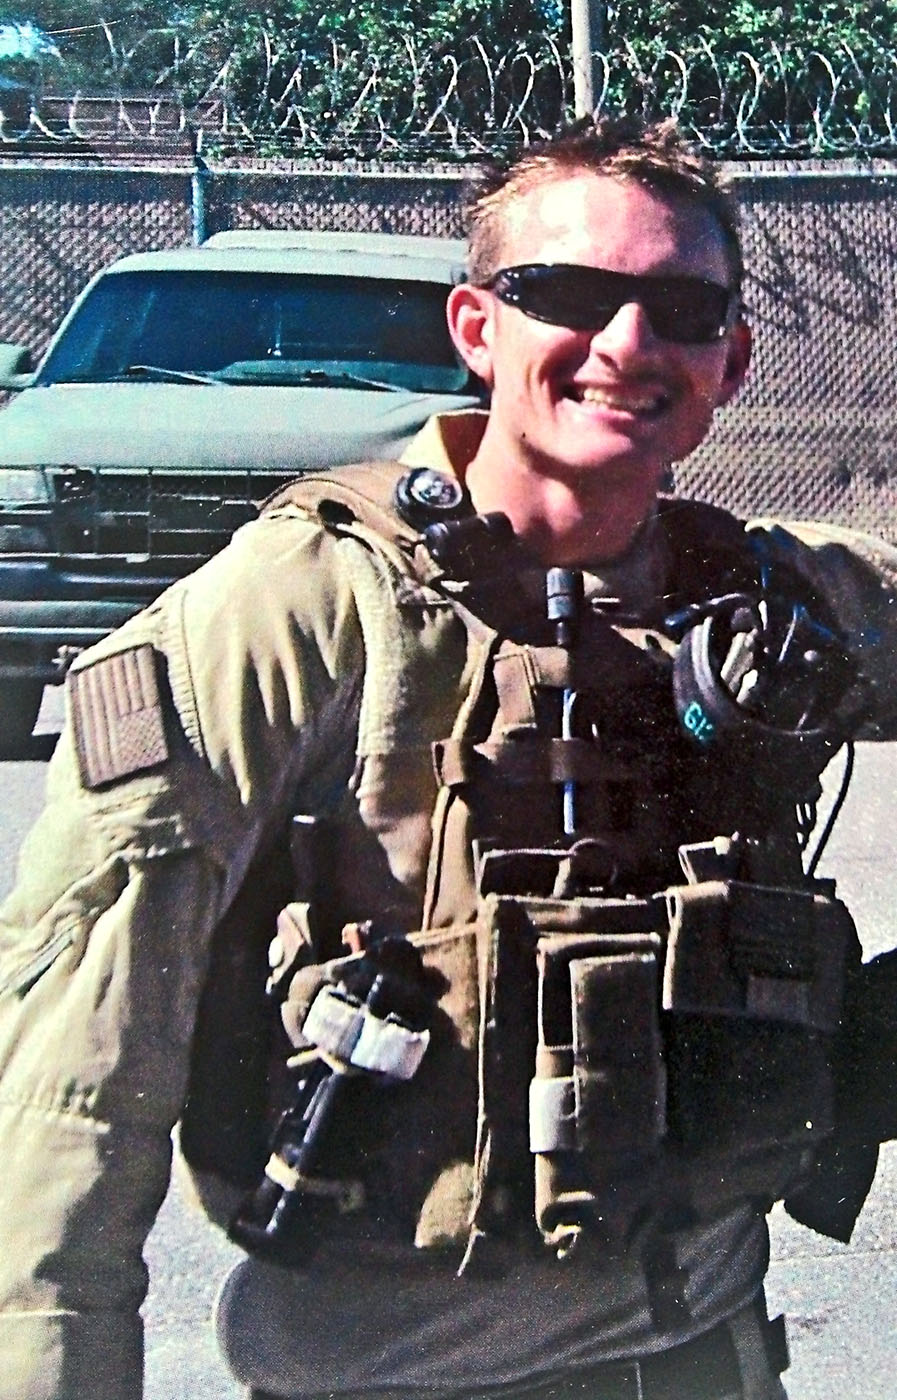 U.S. Navy Petty Officer Second Class Taylor Gallant, 22, of Winchester, Kentucky, assigned to the Explosive Ordnance Disposal Mobile Unit 12, based in Joint Expeditionary Base Little Creek in Virginia Beach, Virginia, died on January 26, 2012, while conducting diving operations off the North Carolina coast in the Atlantic Ocean. He is survived by his son Ethan, brother Kyle, mother Elizabeth, and father Joseph.